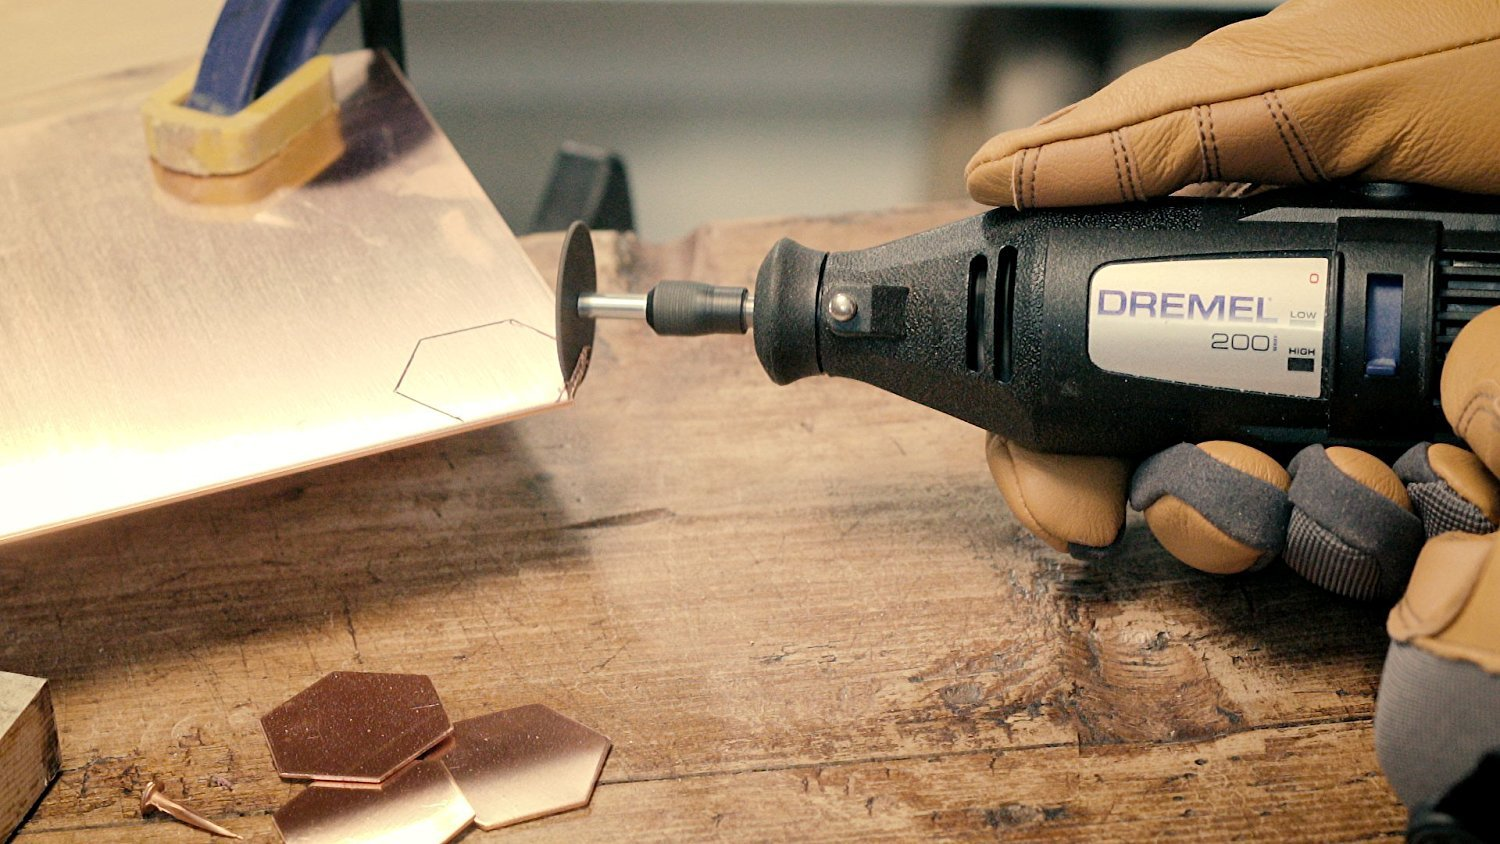 Dremel 2290 3-Tool Craft & Hobby Maker Kit with 200-Series Rotary Tool, Engraver & Butane Soldering Torch w/ Hatch Project Kit by Dremel (Image #4)